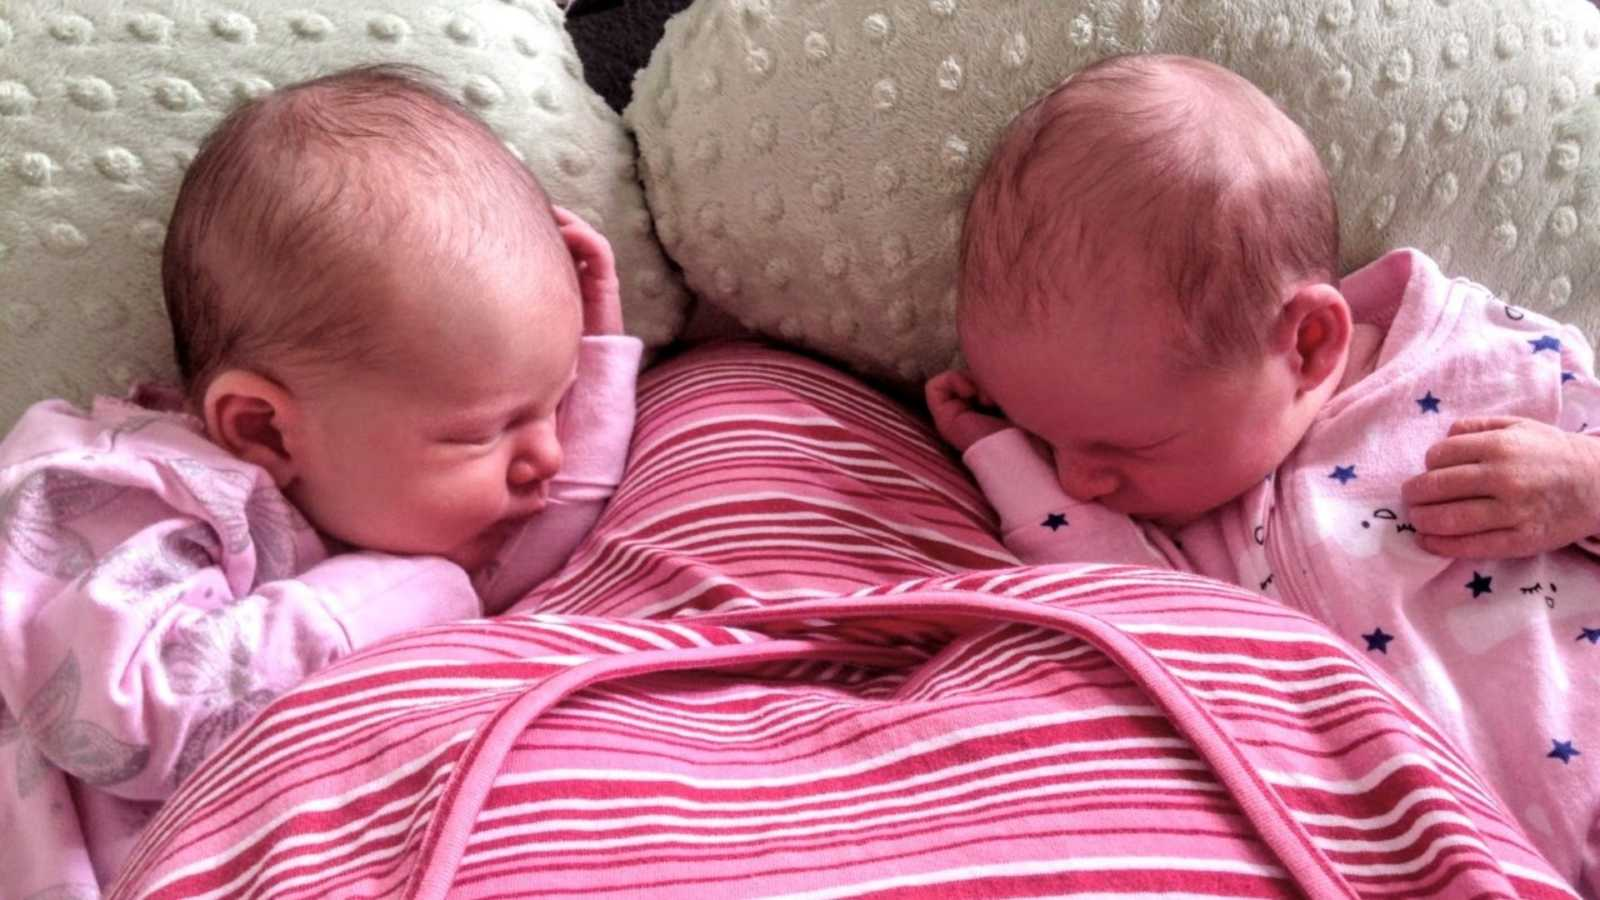 Mom shares photo of her newborn twins napping after breastfeeding